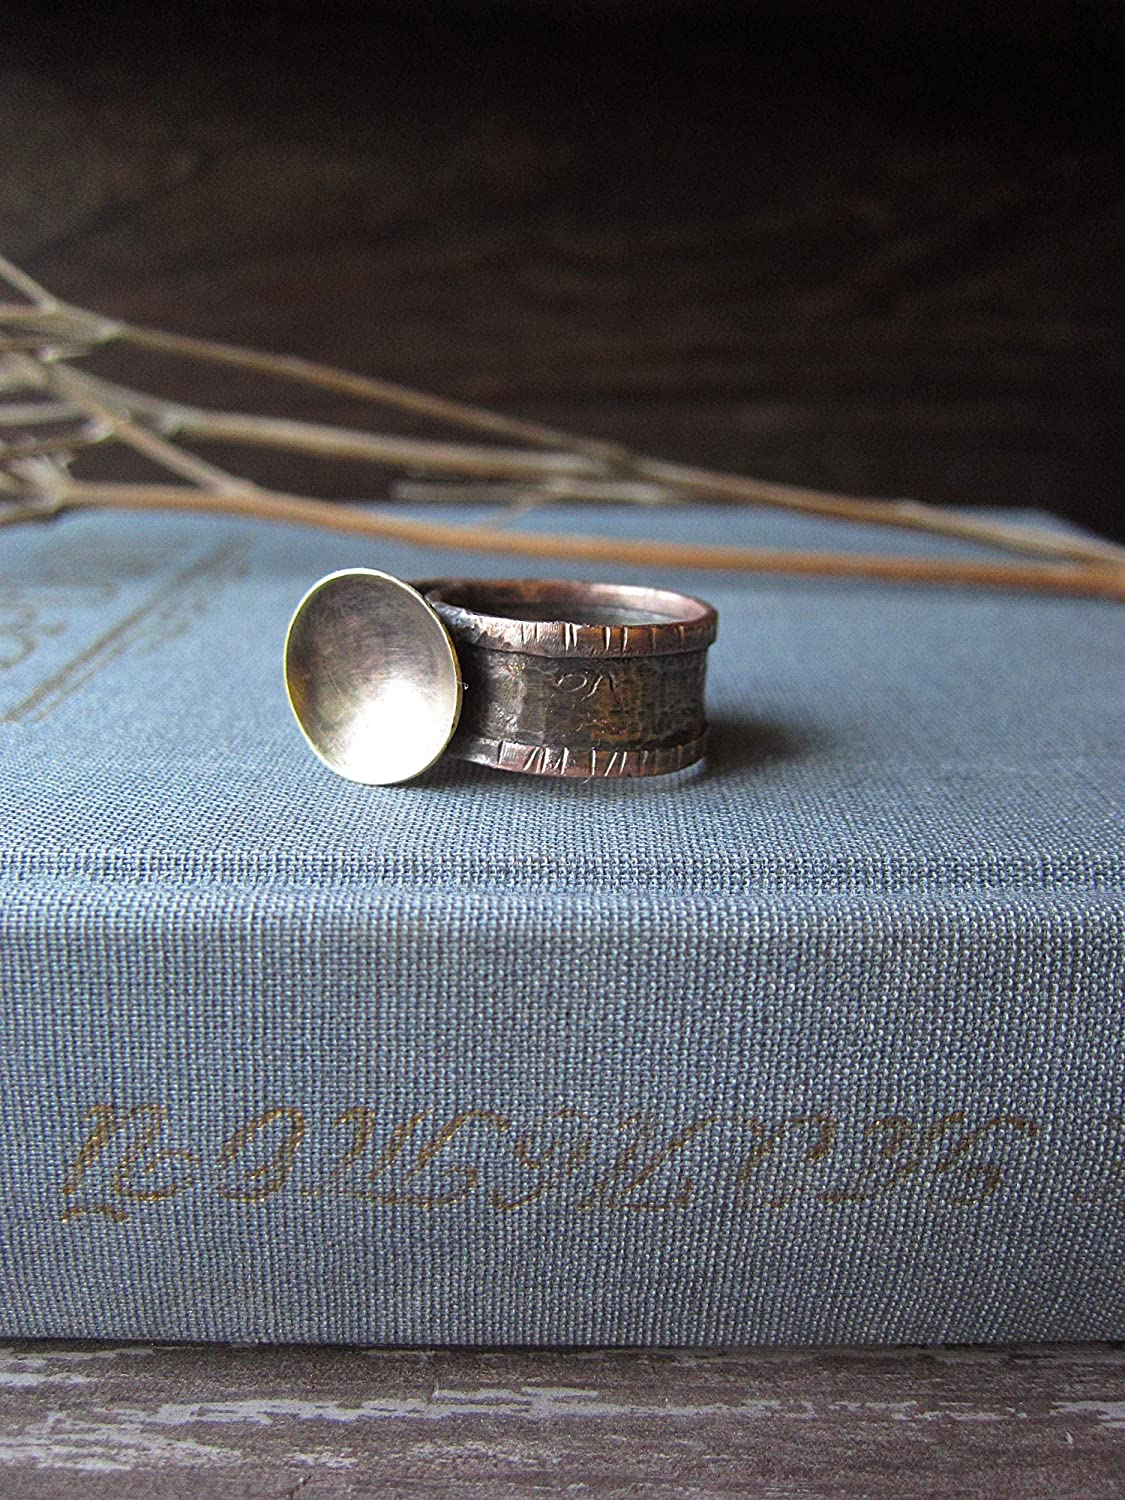 V-shank Ring Mixed Metal Ring Gift Ring Unique Hand-made Sterling Silver Ring Sterling silver Ring with Brass Cable insert